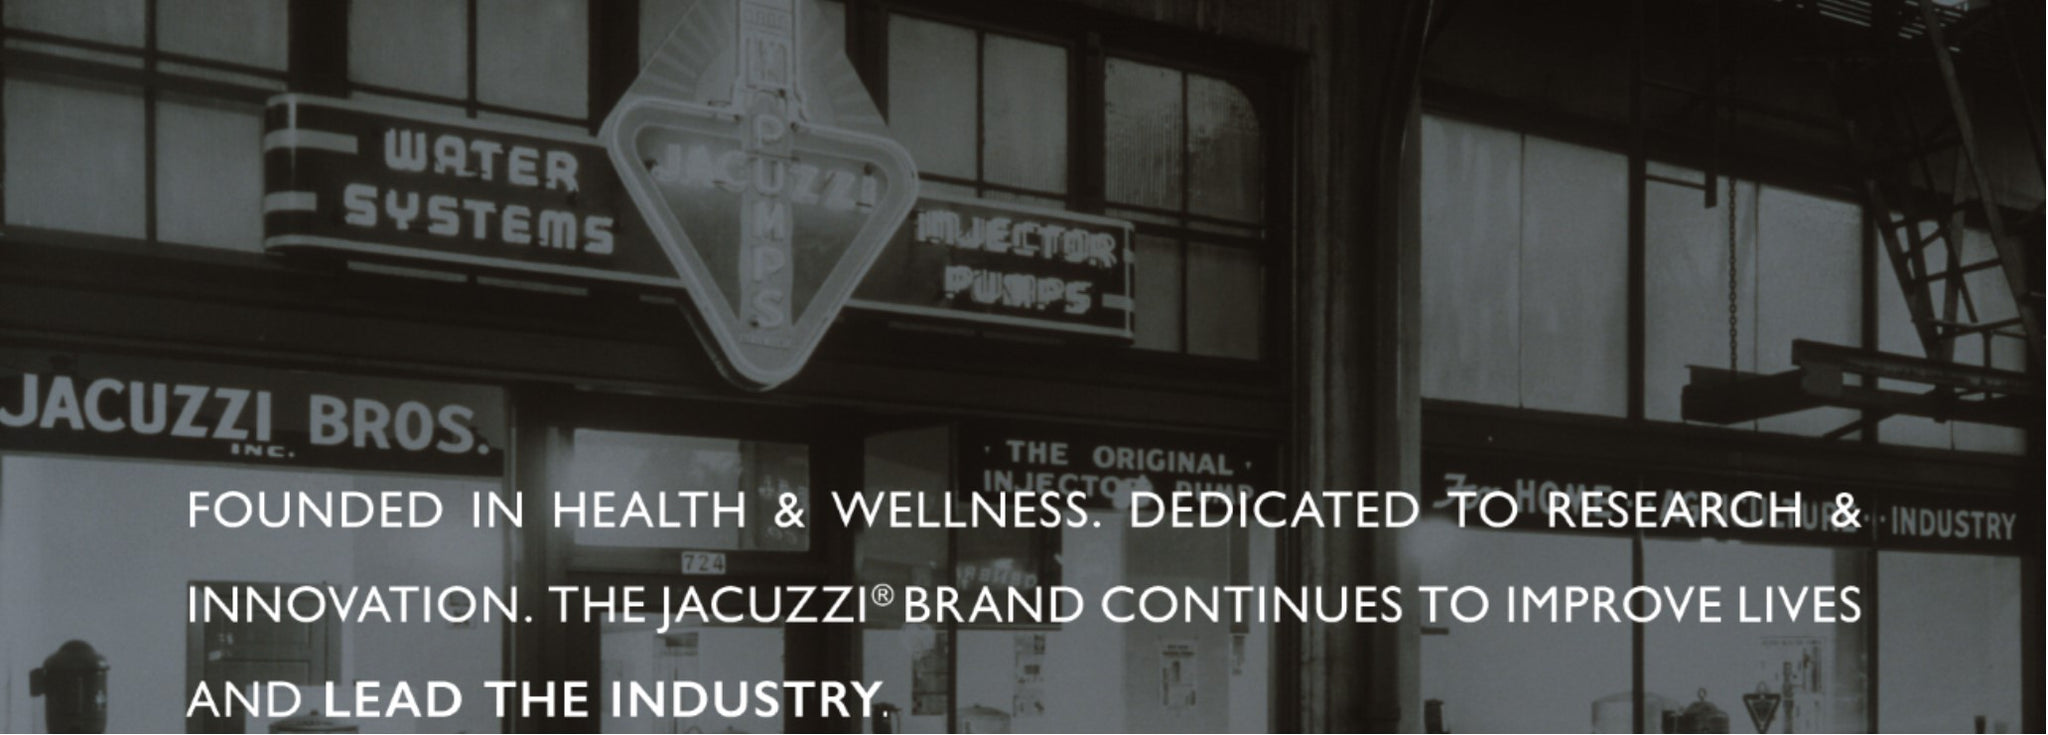 The Jacuzzi® Brand at Outdoor Living